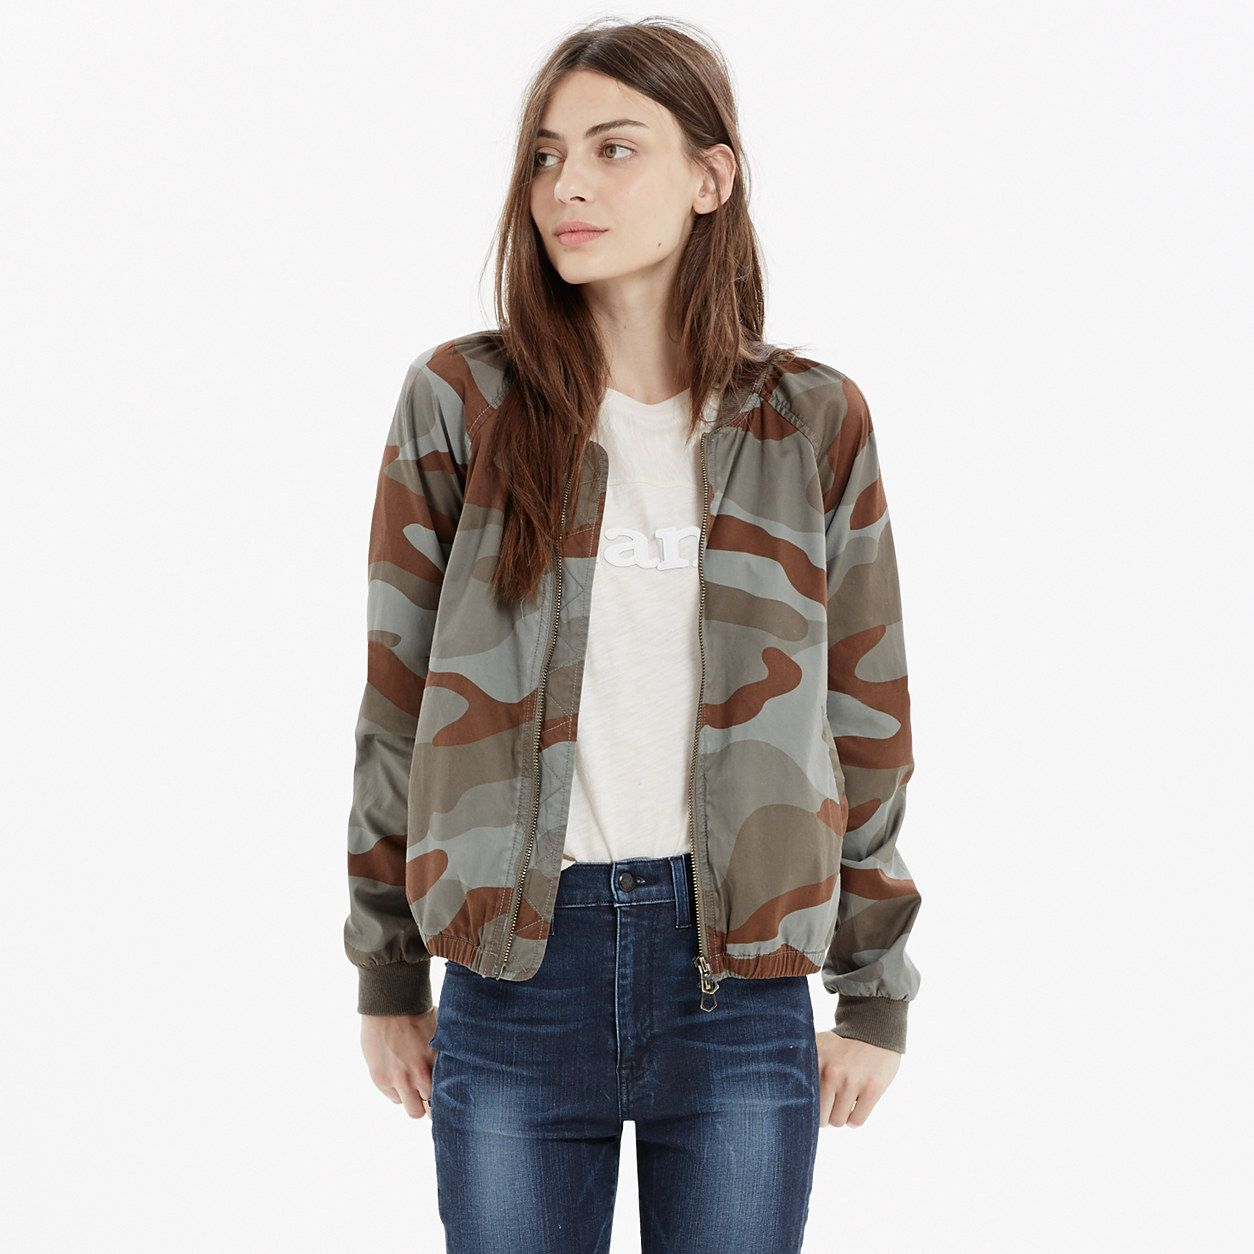 Bomber Jacket in Dusk Camo jackets Madewell (With